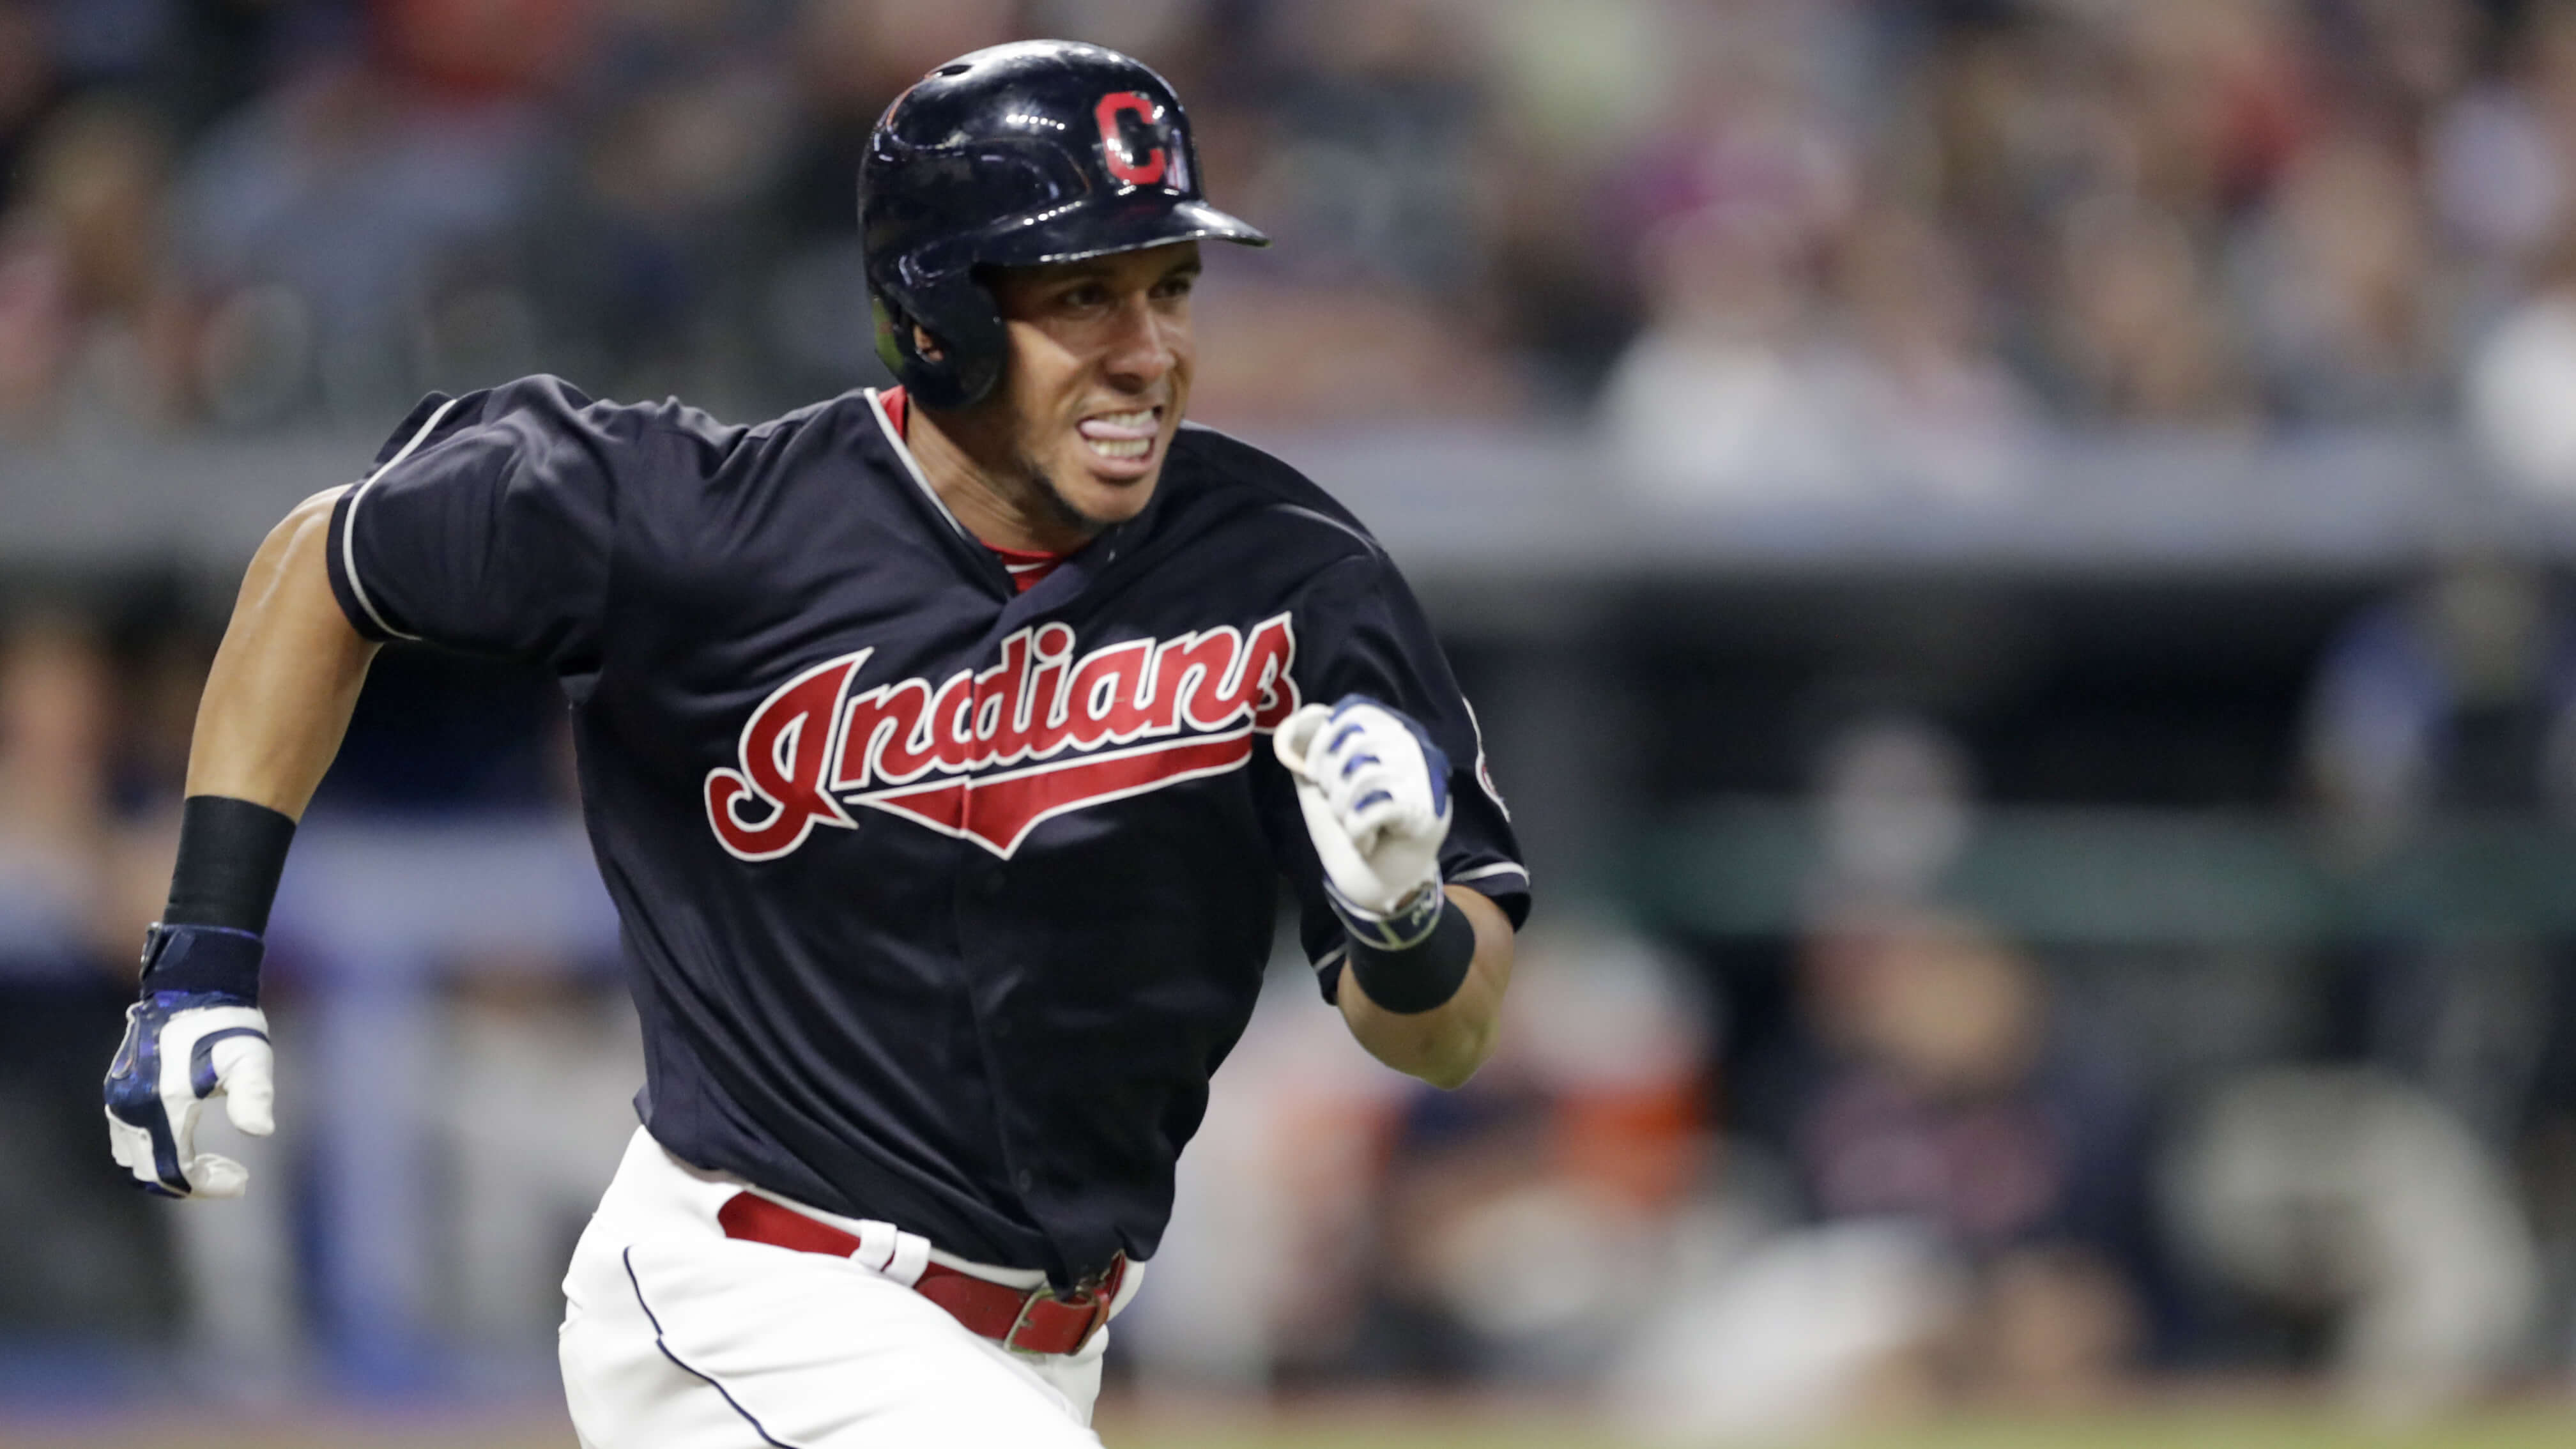 Michael Brantley runs to first base on a passed ball in the Indians' Sept. 19 game against the Chicago White Sox in Cleveland.